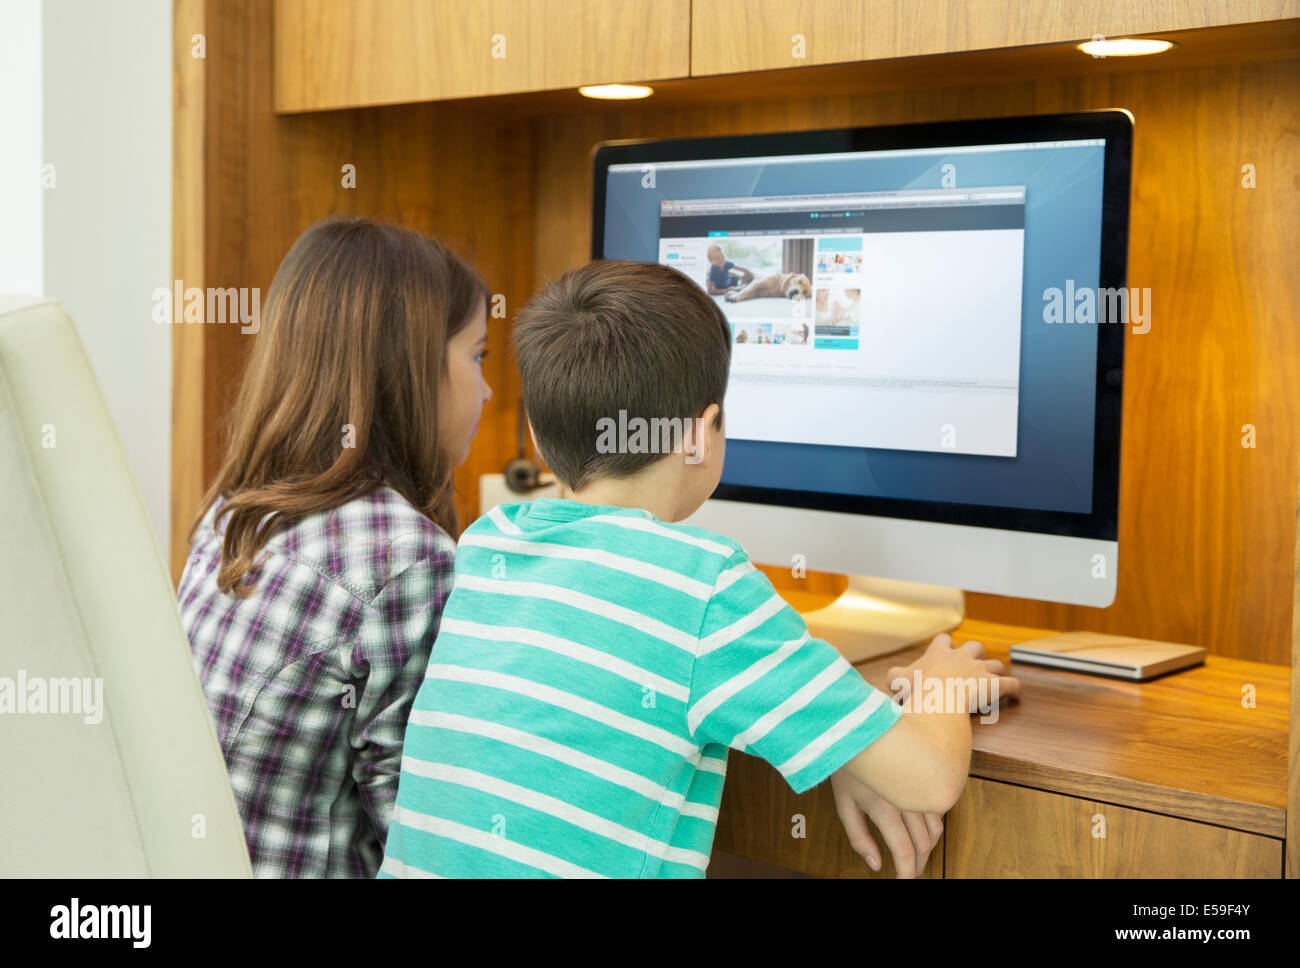 Children using computer together - Stock Image